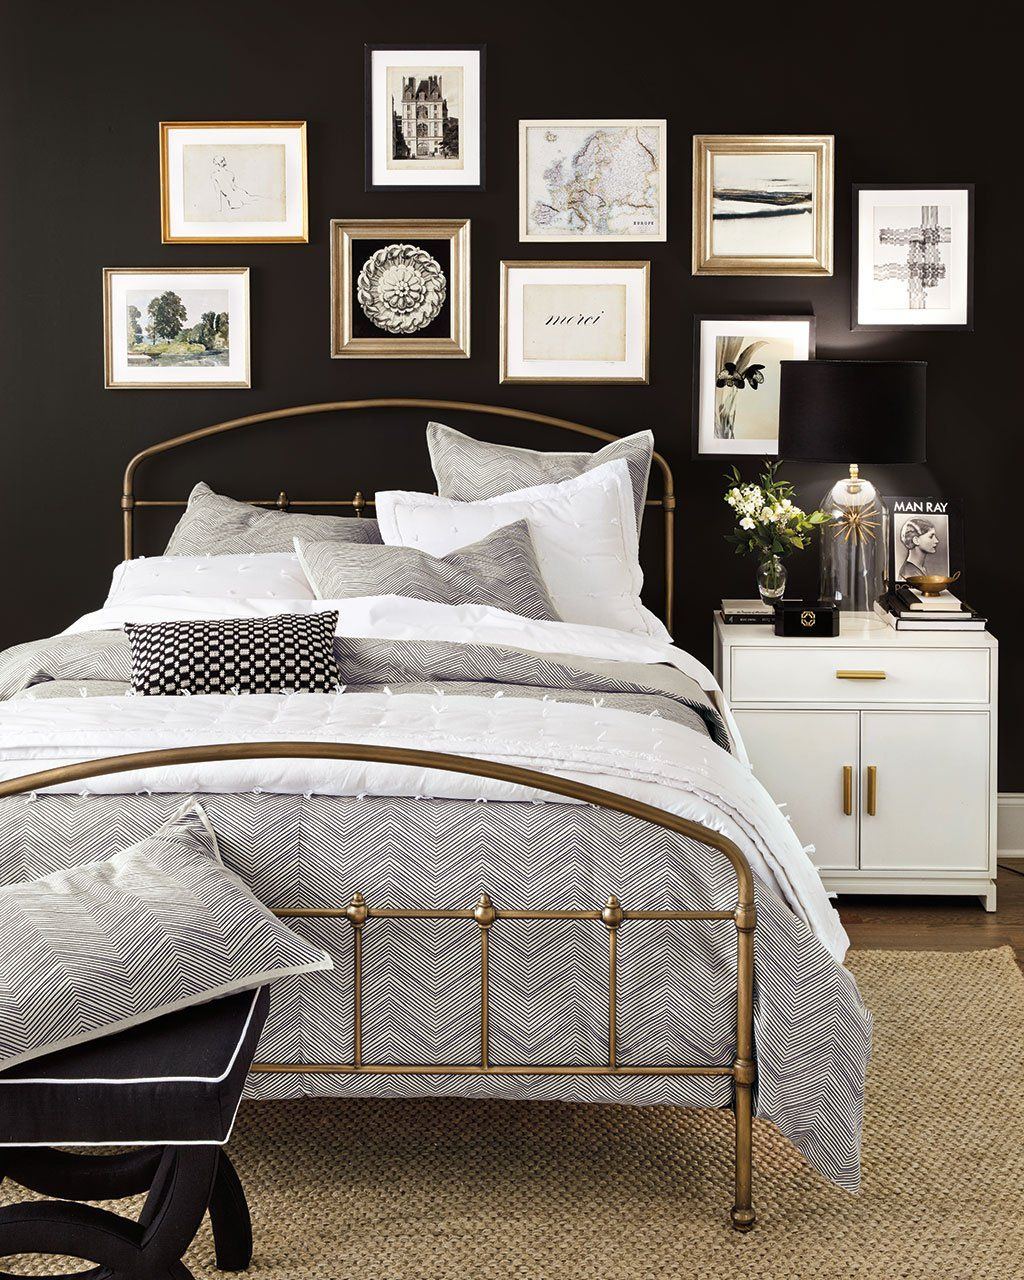 8 Reasons We Love Decorating With Black And White How To Decorate Black Walls Bedroom White Furniture Furniture